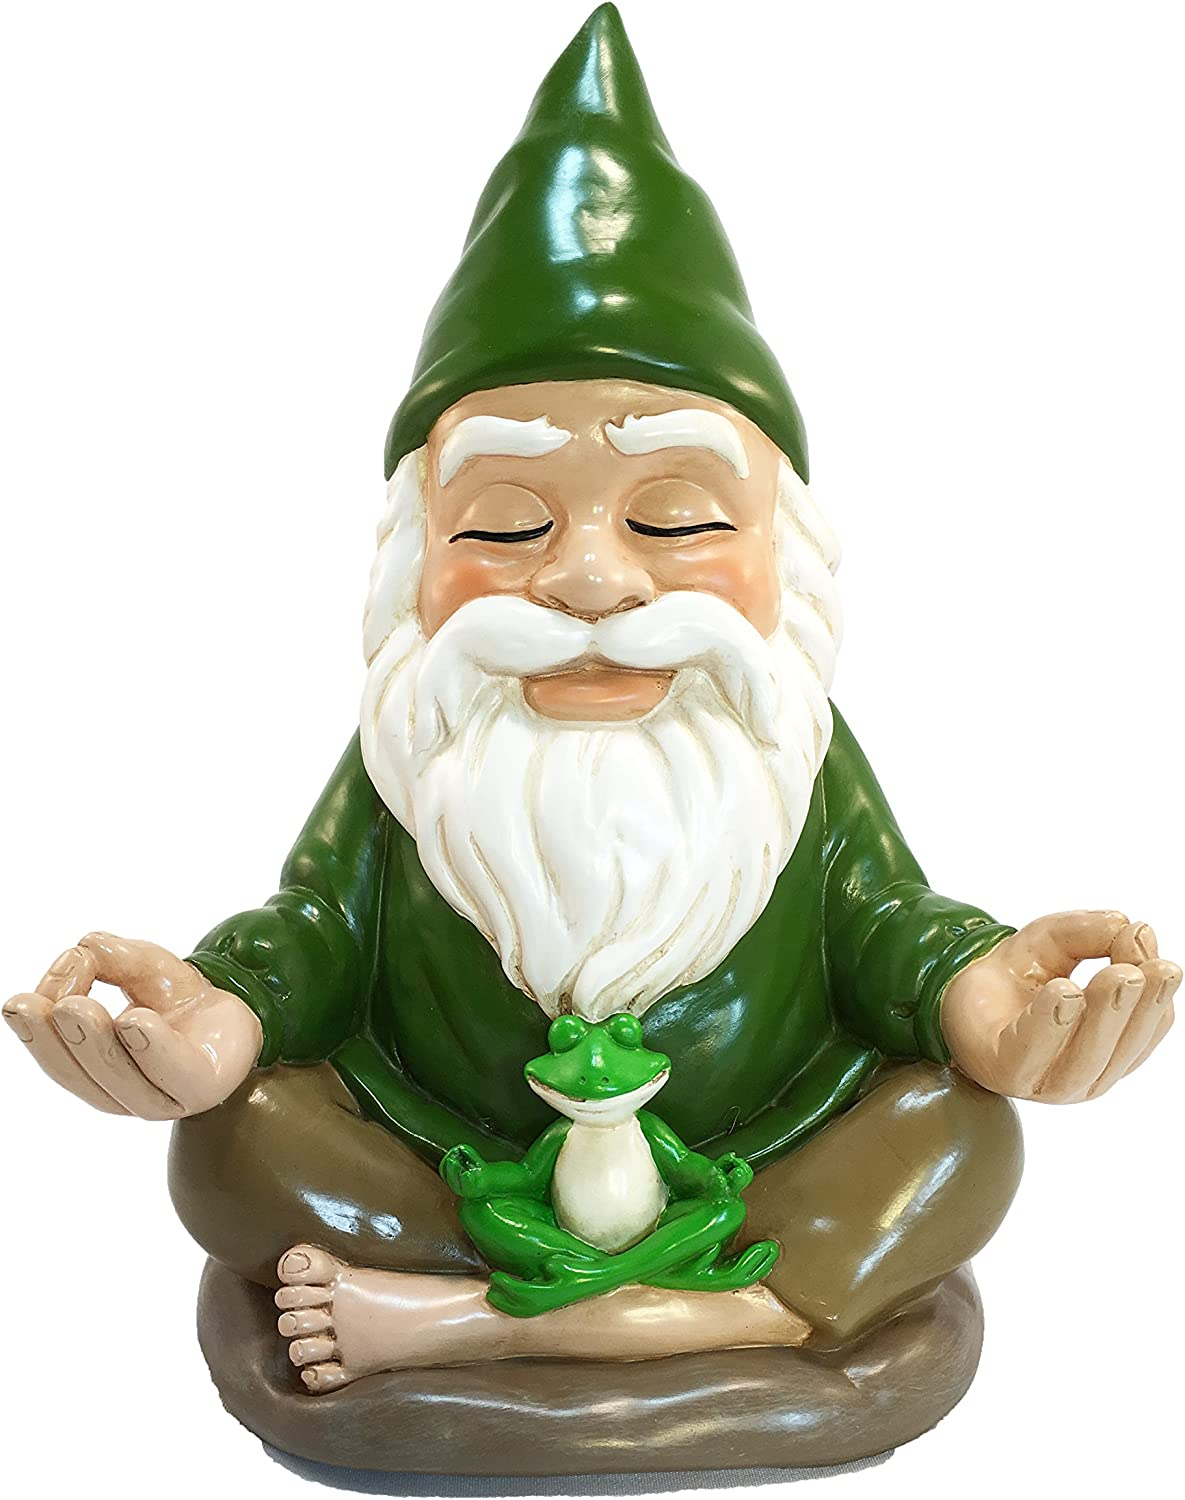 Zen Gnome – Tranquility and Your for Peacefulness Fairy Gar Max Mail order 55% OFF